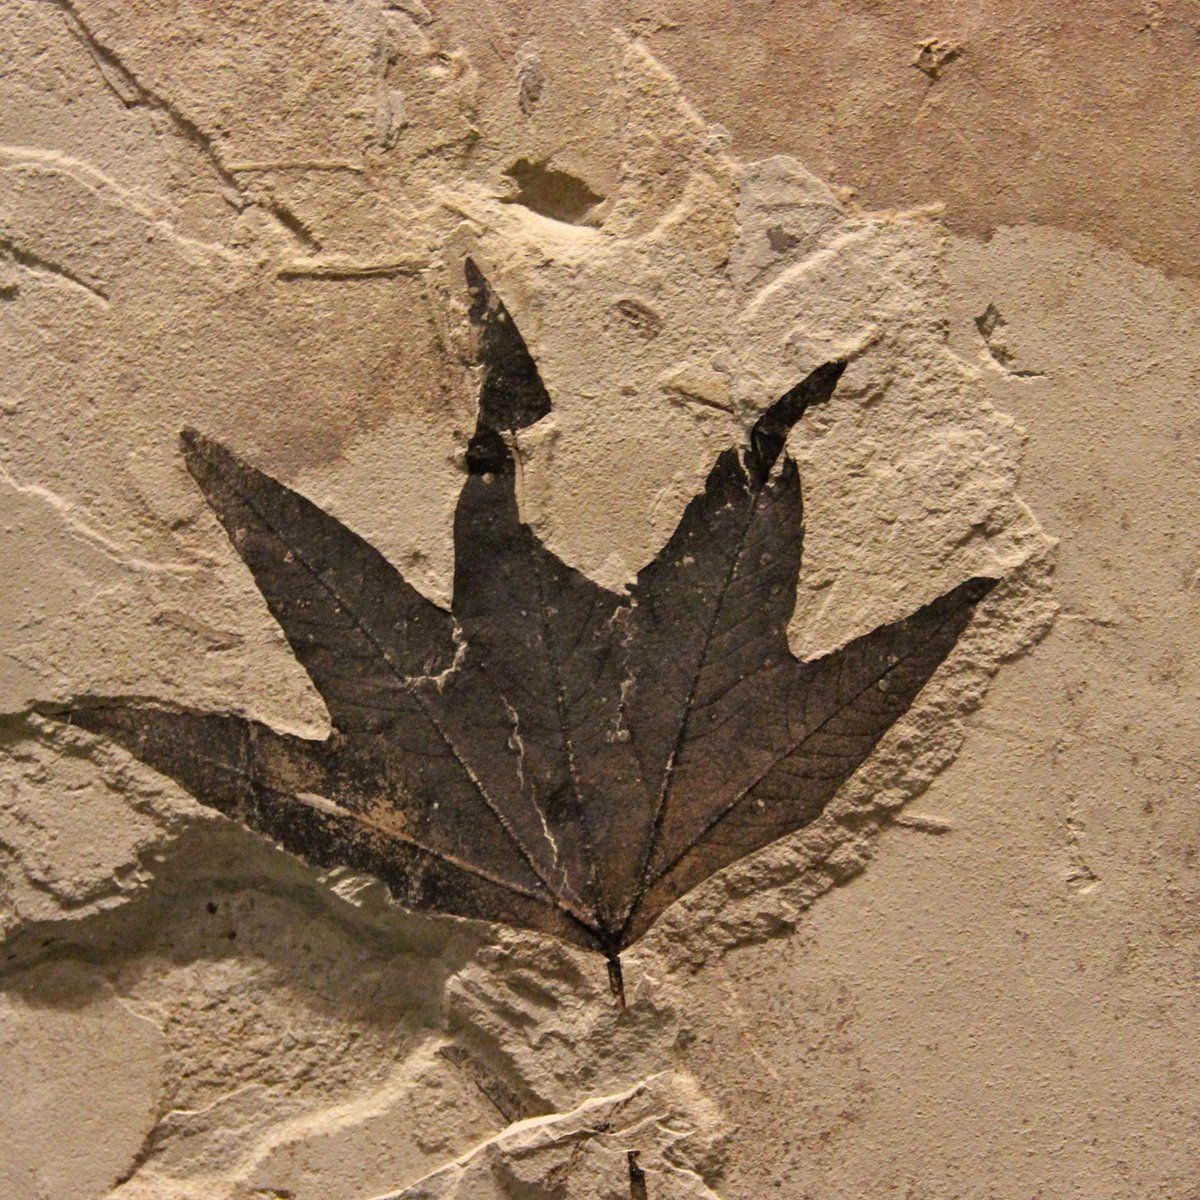 Macginitiea wyomingensis, an extinct sycamore - Green River Formation.